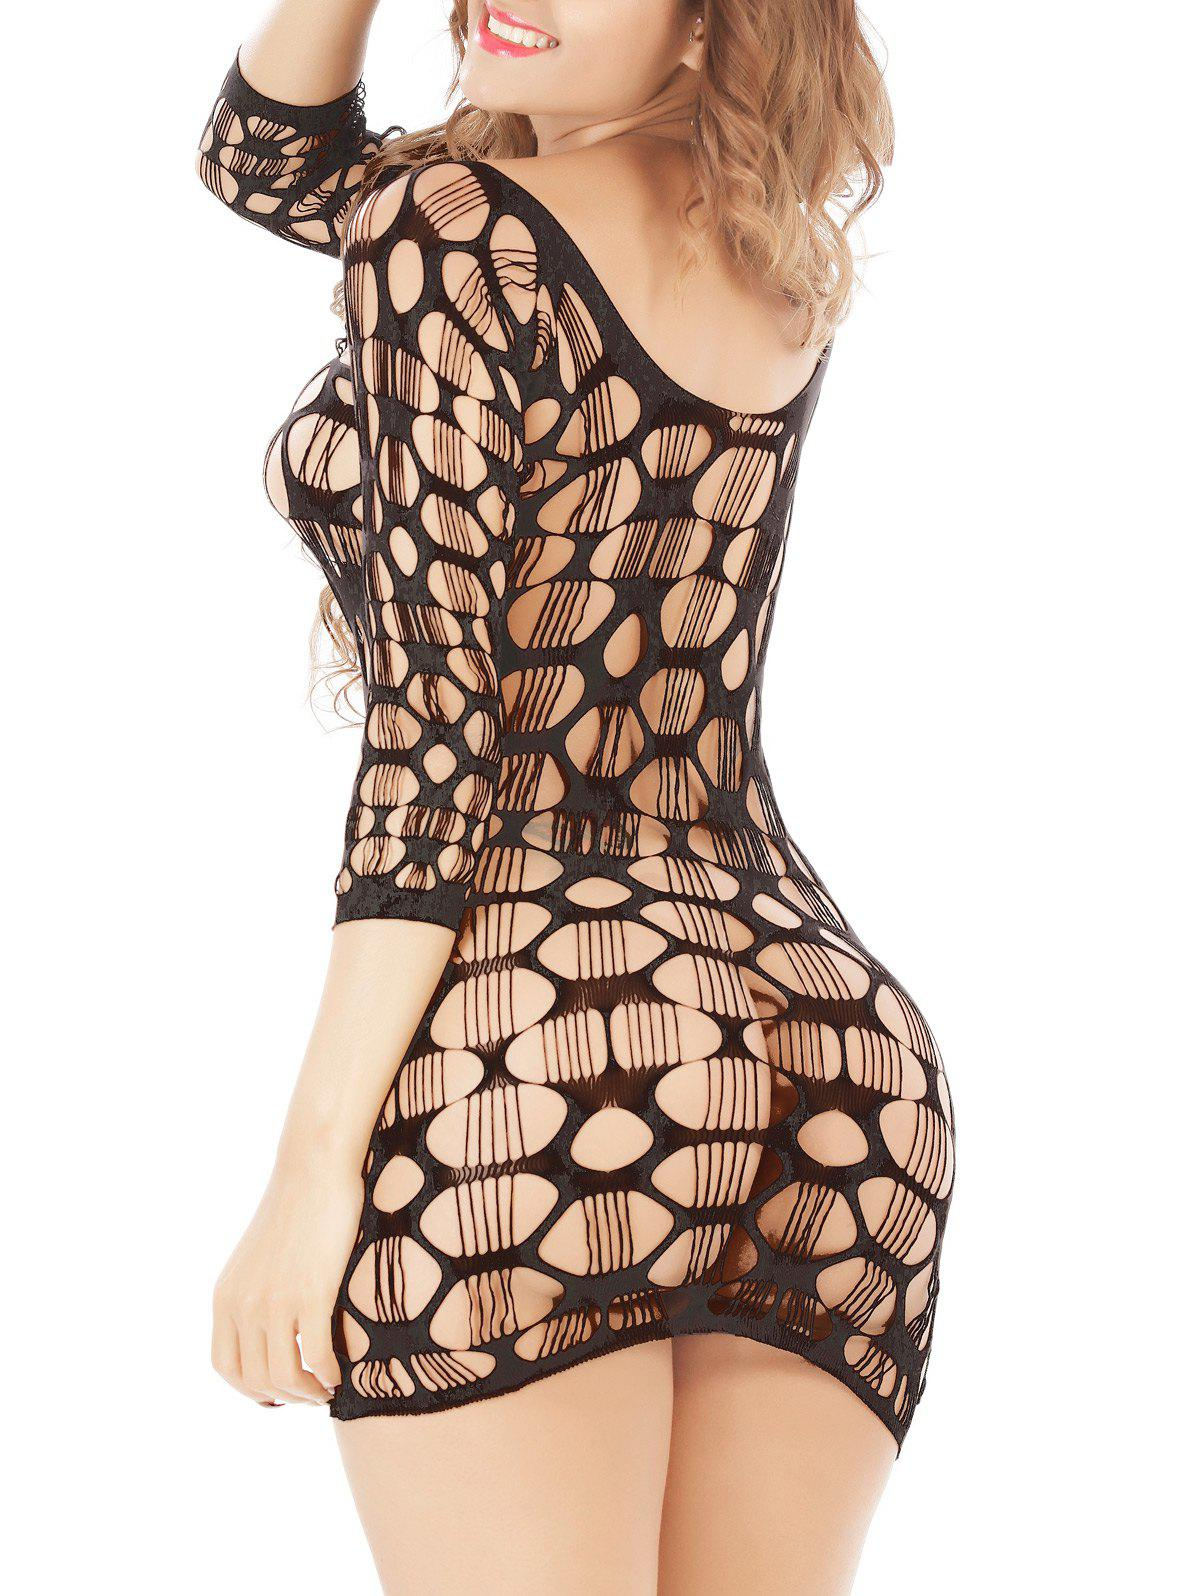 Crochet See Through Lace Dress Tight - Noir ONE SIZE